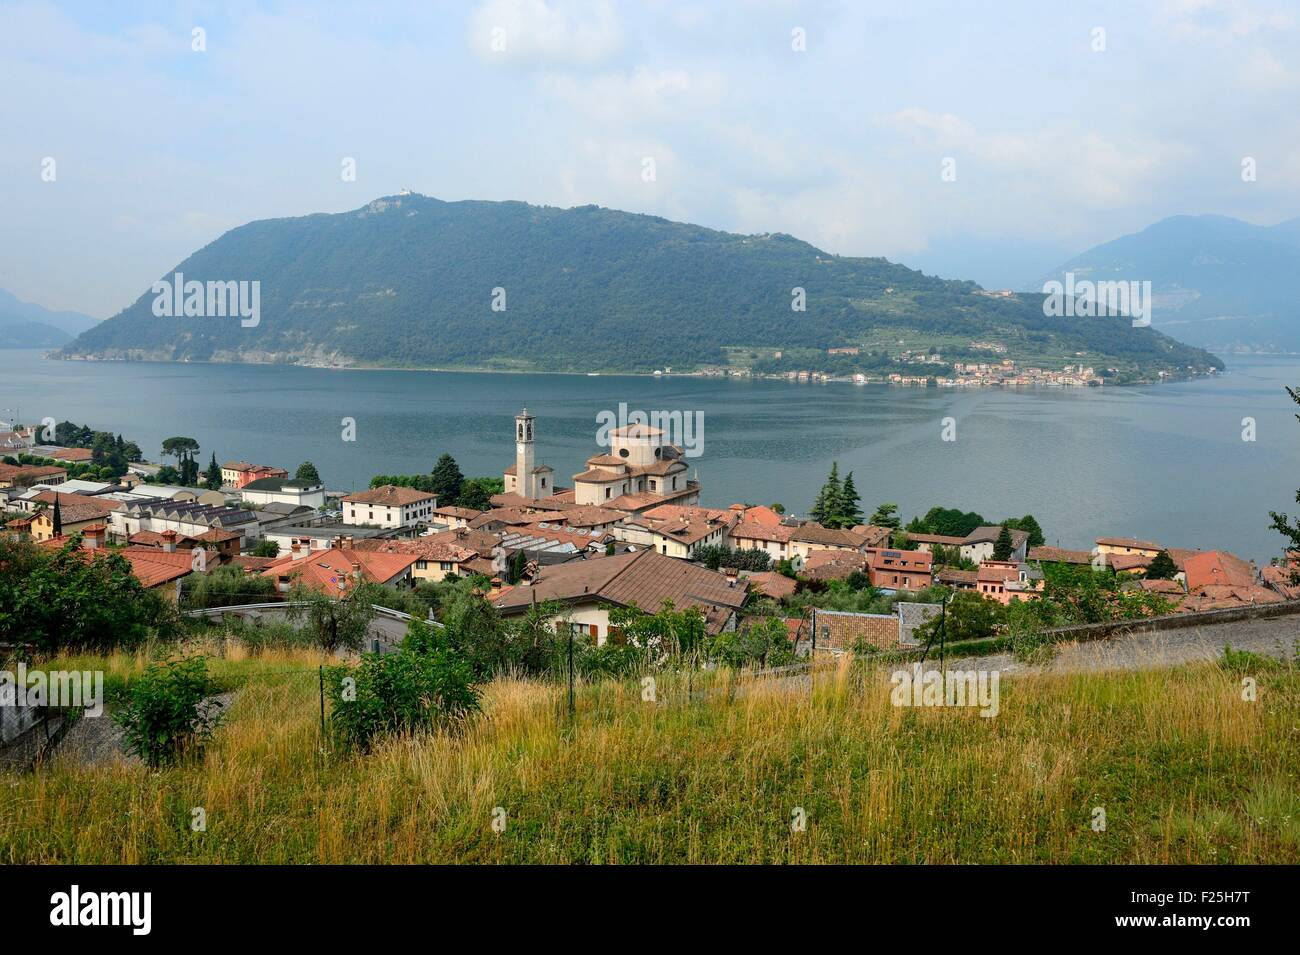 Italy, Lombardy, Iseo lake, Marone and Monte Isola island - Stock Image